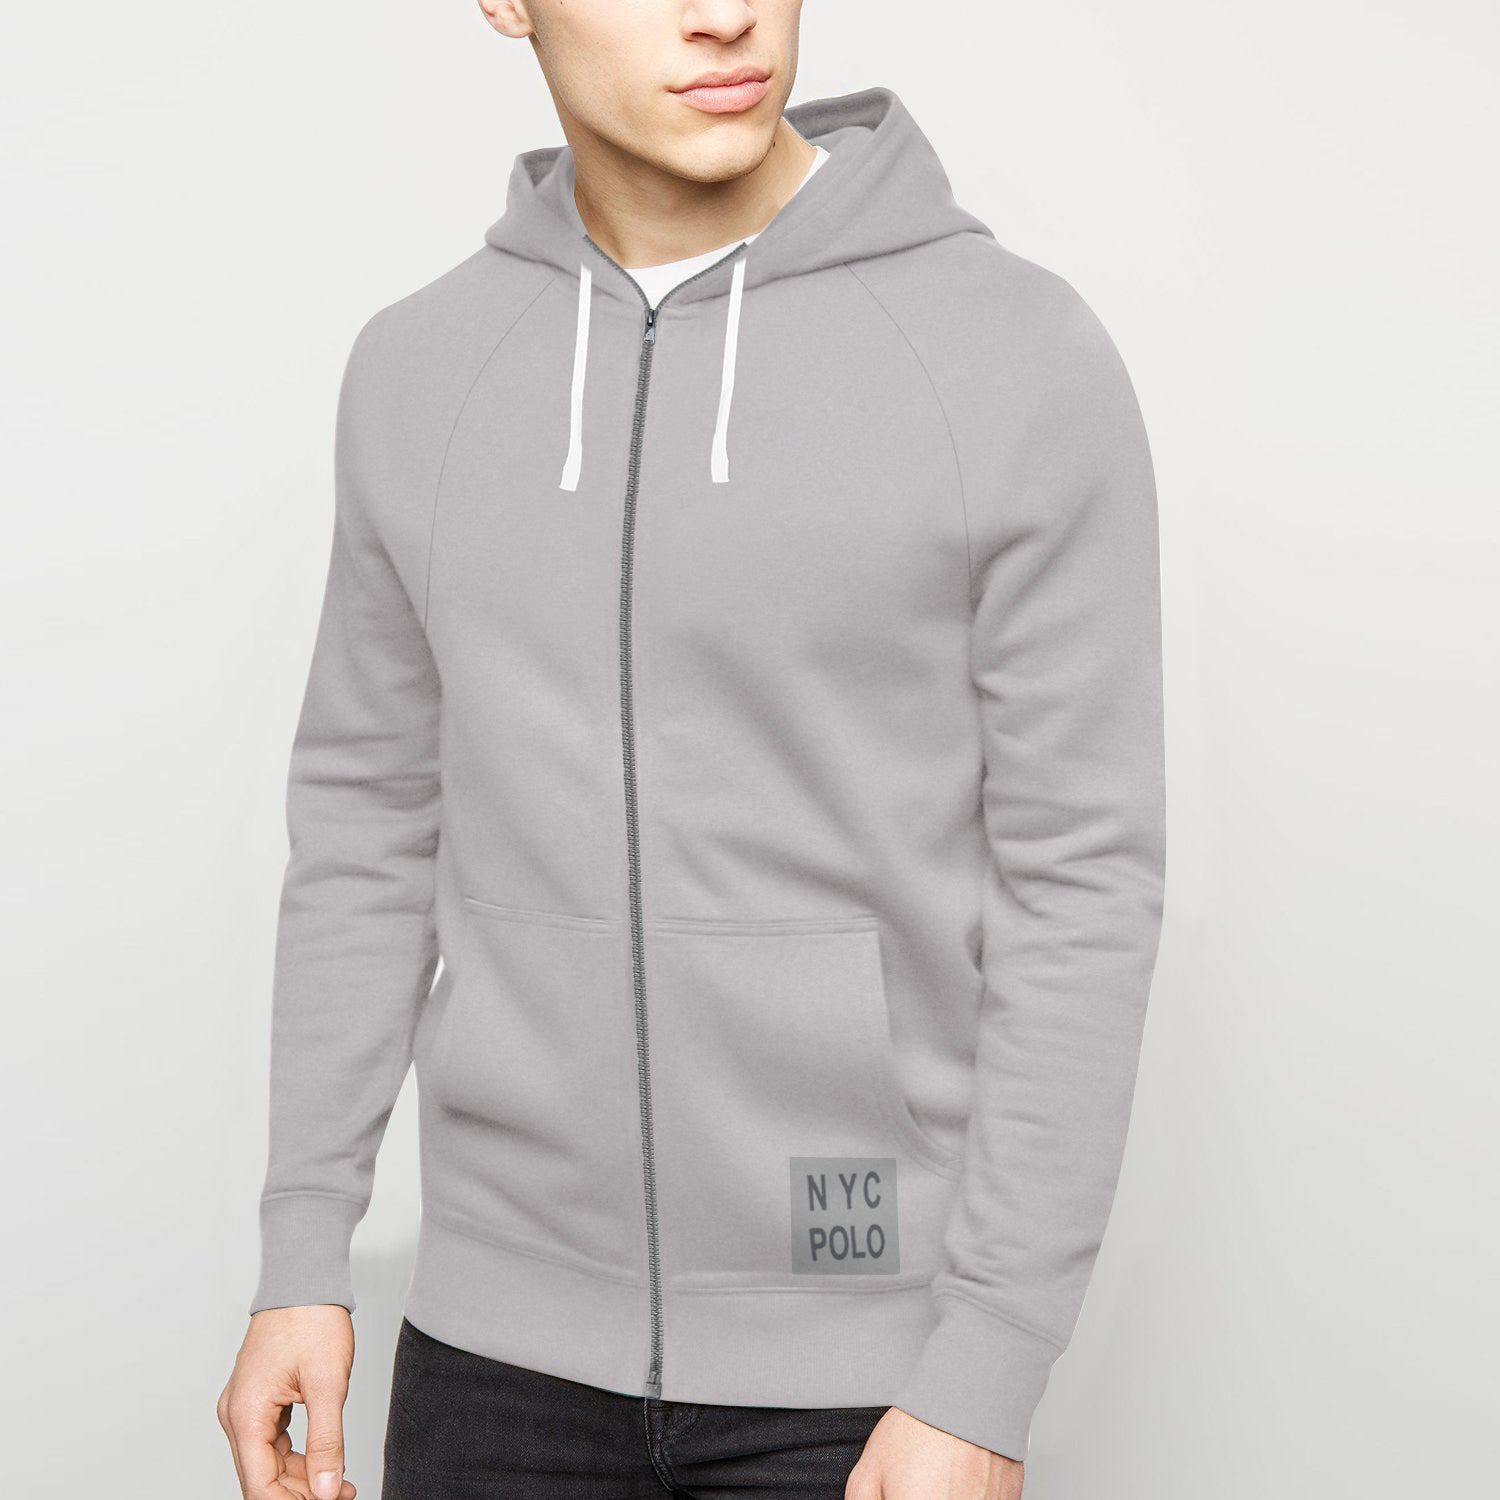 NYC Polo Fleece Zipper Hoodie For Men-Light Corn Flower-BE12906